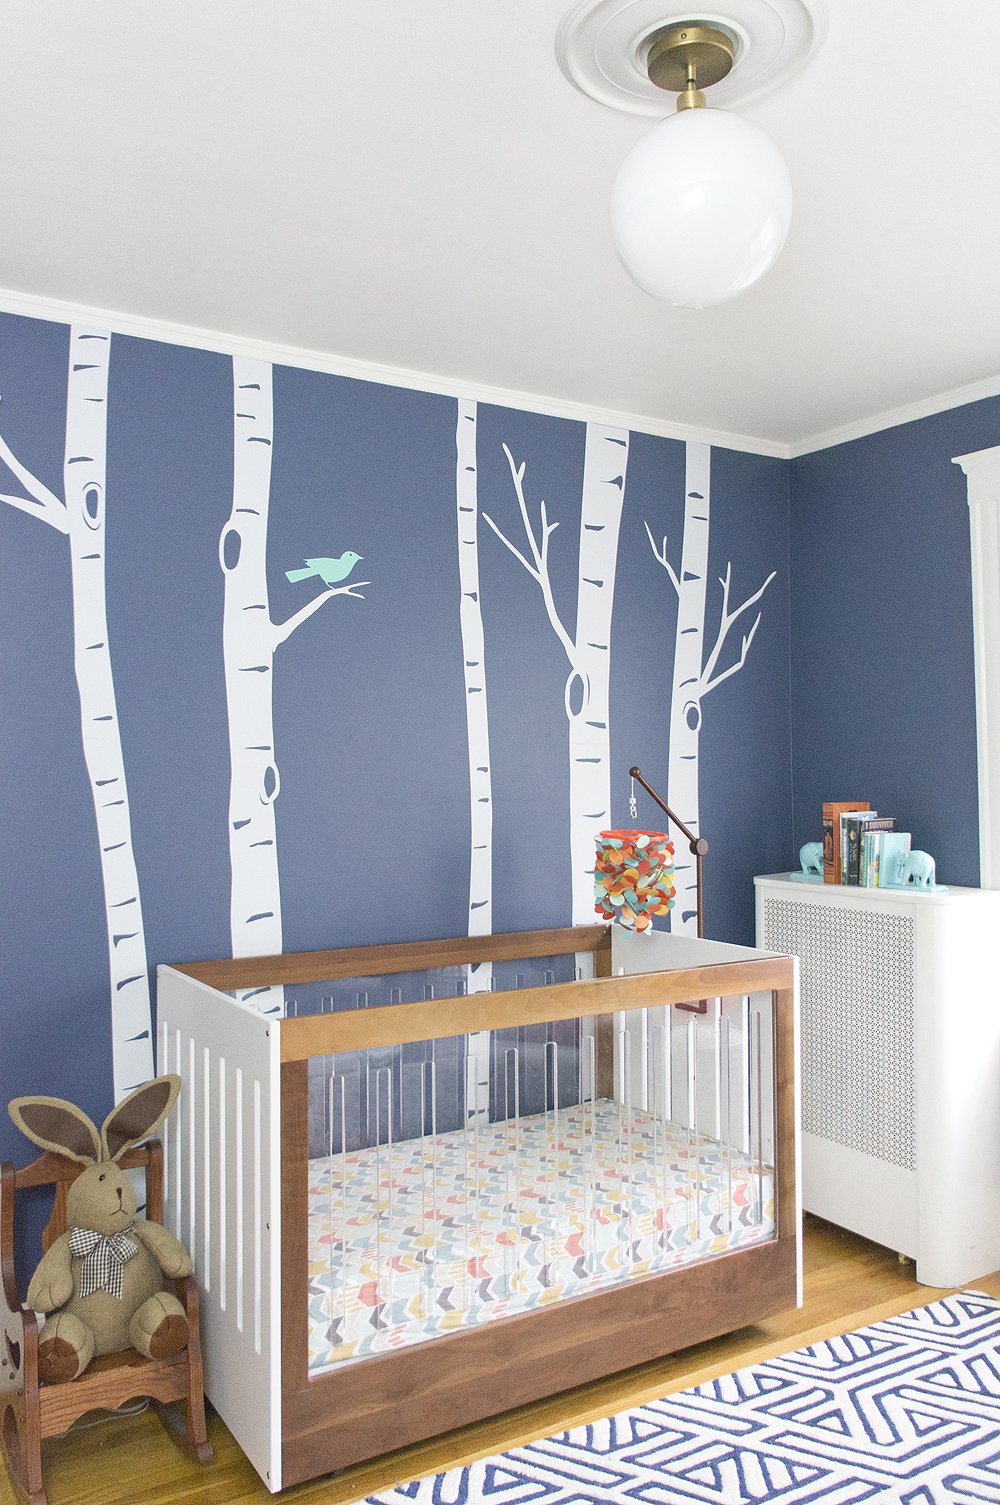 Vibrany Way Interiors Nursery via Year of Serendipity